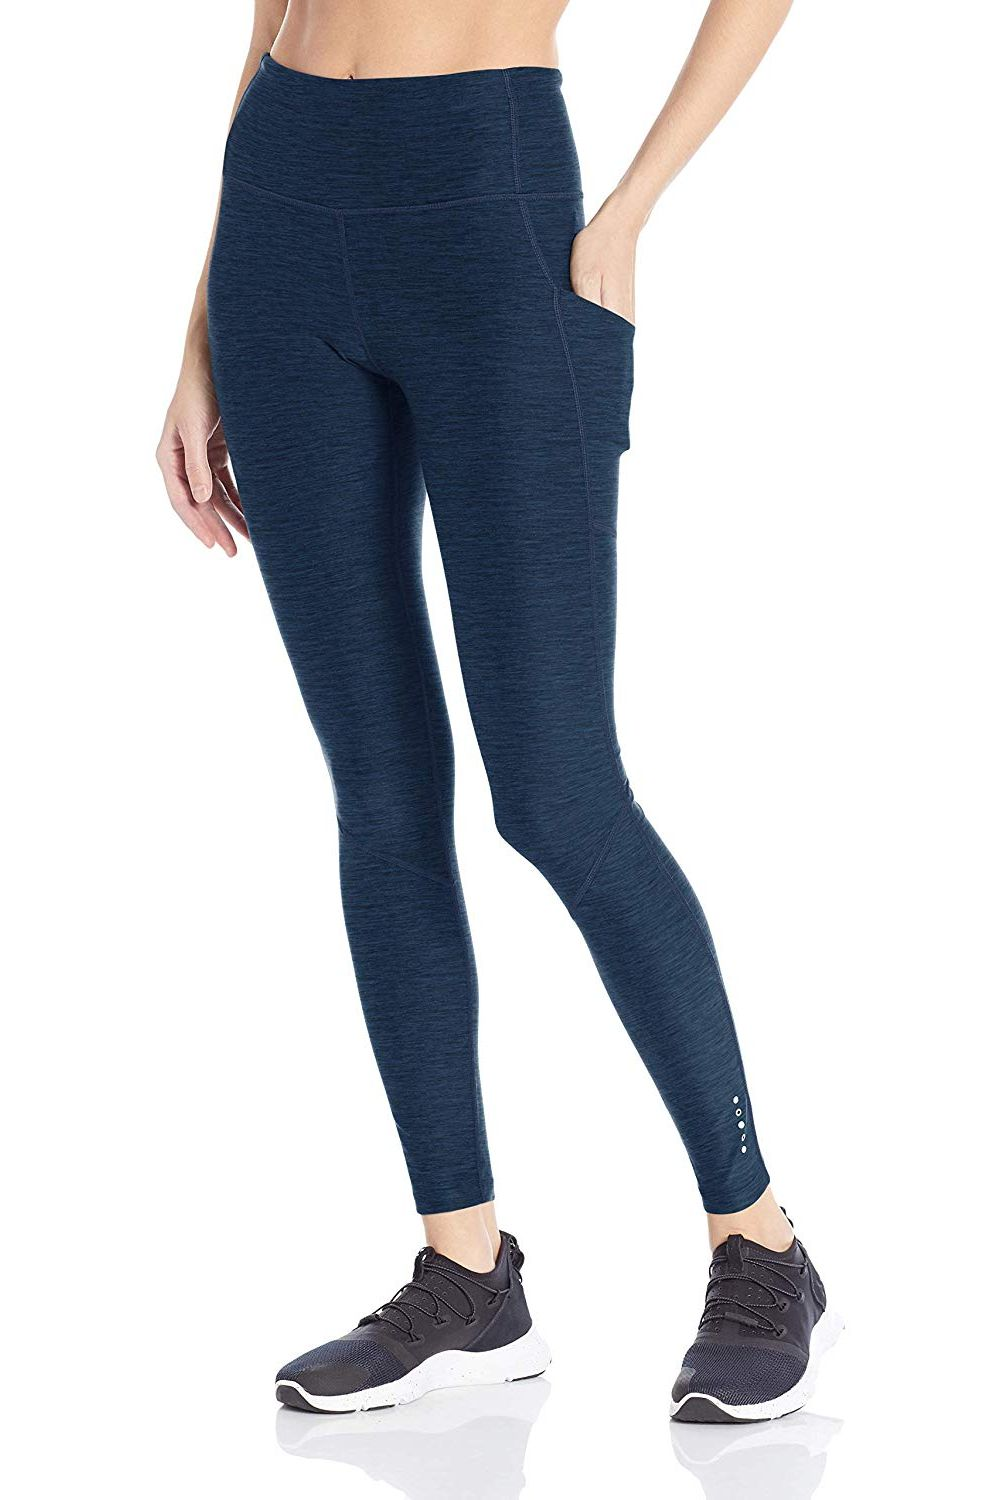 Core 10 Women's Cozy High Waist Yoga Workout Legging with Pockets